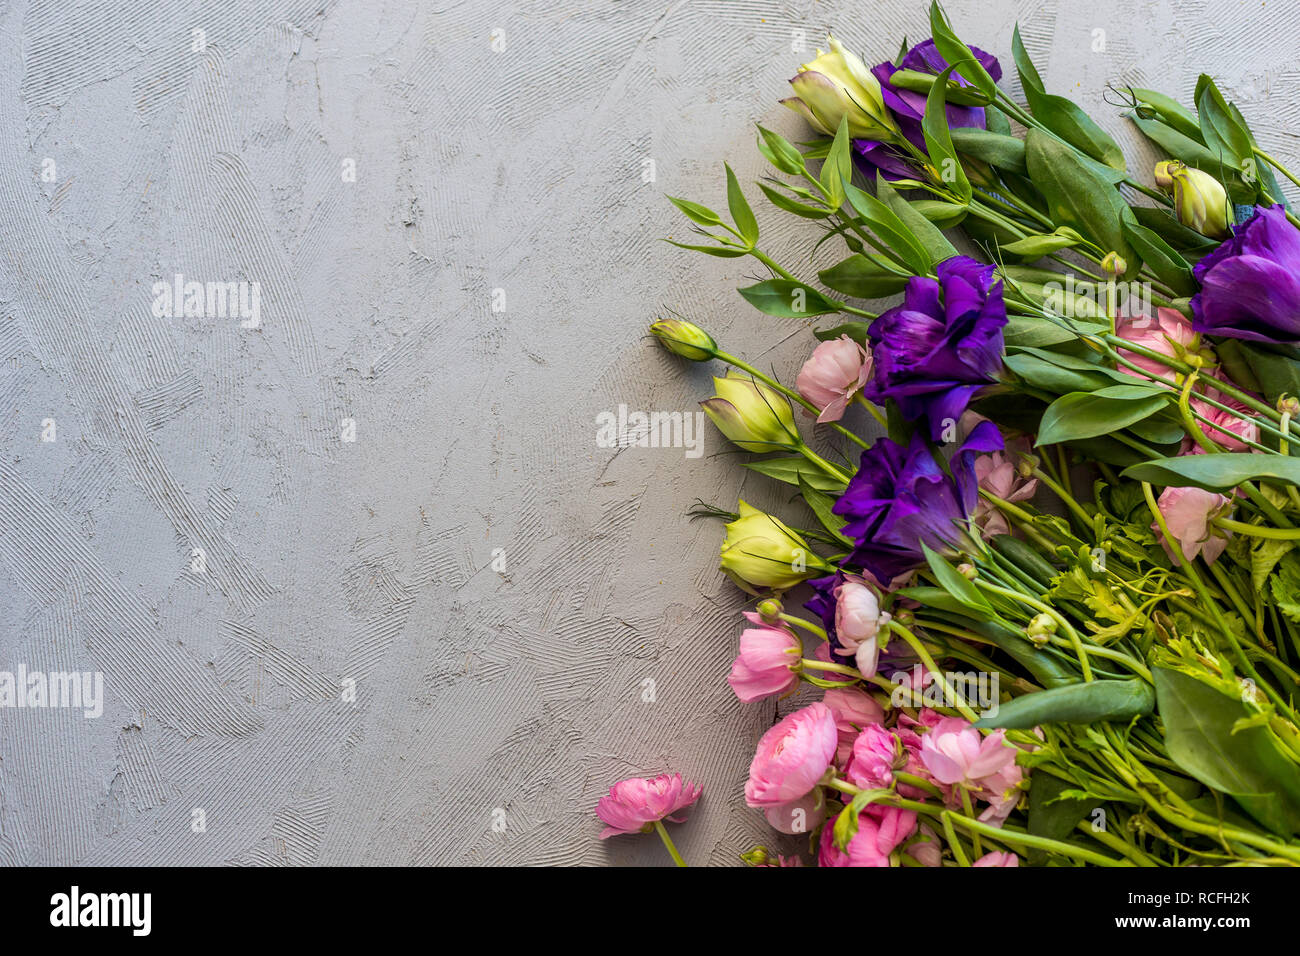 Floral flatlay. Upper view shot of pink ranunculus and purple lisianthus over concrete tabletop., Copy space. - Stock Image